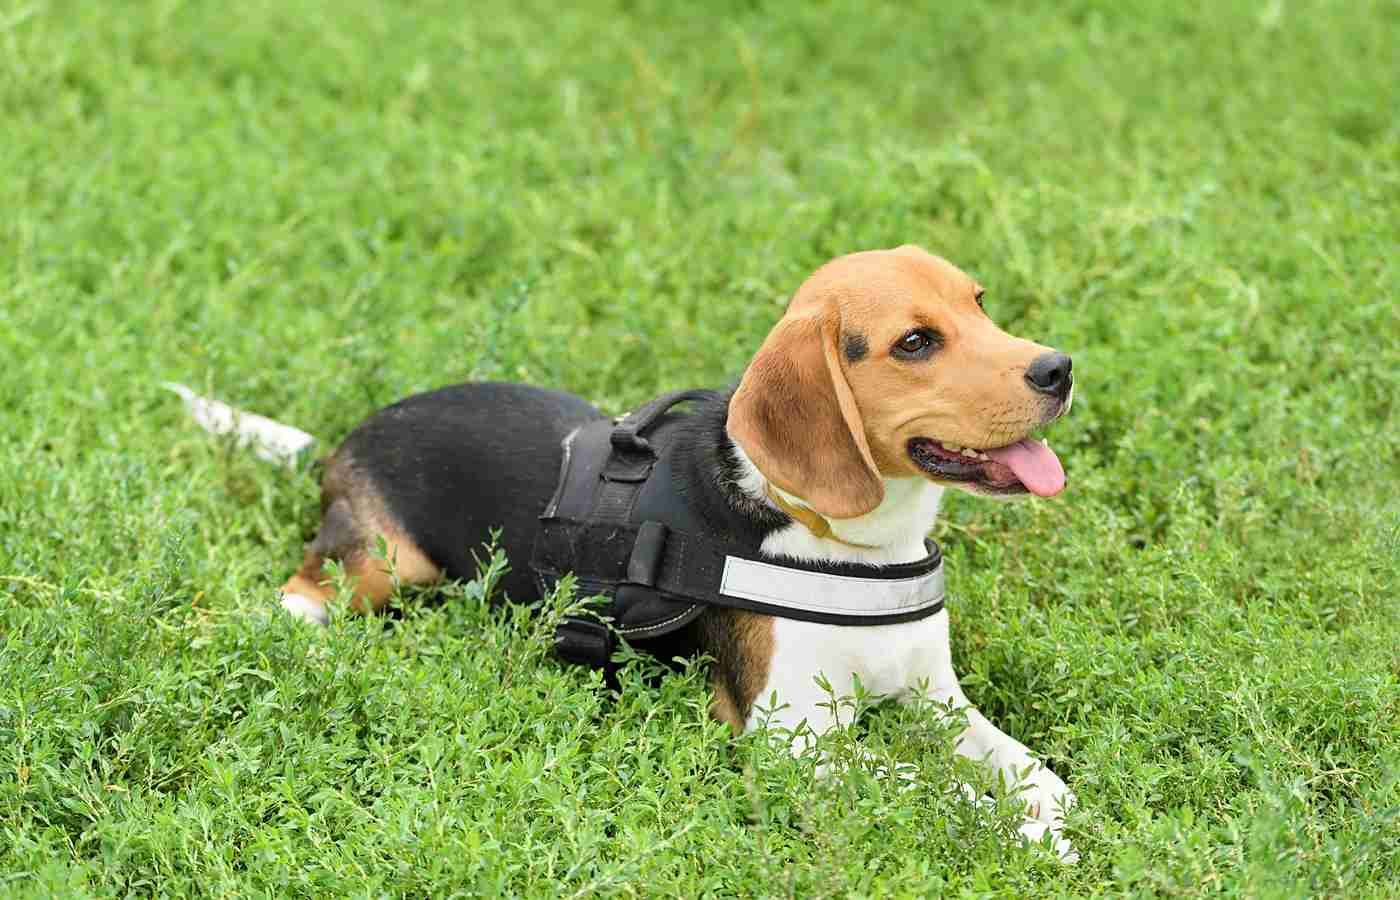 beagle with harness relaxing on grass